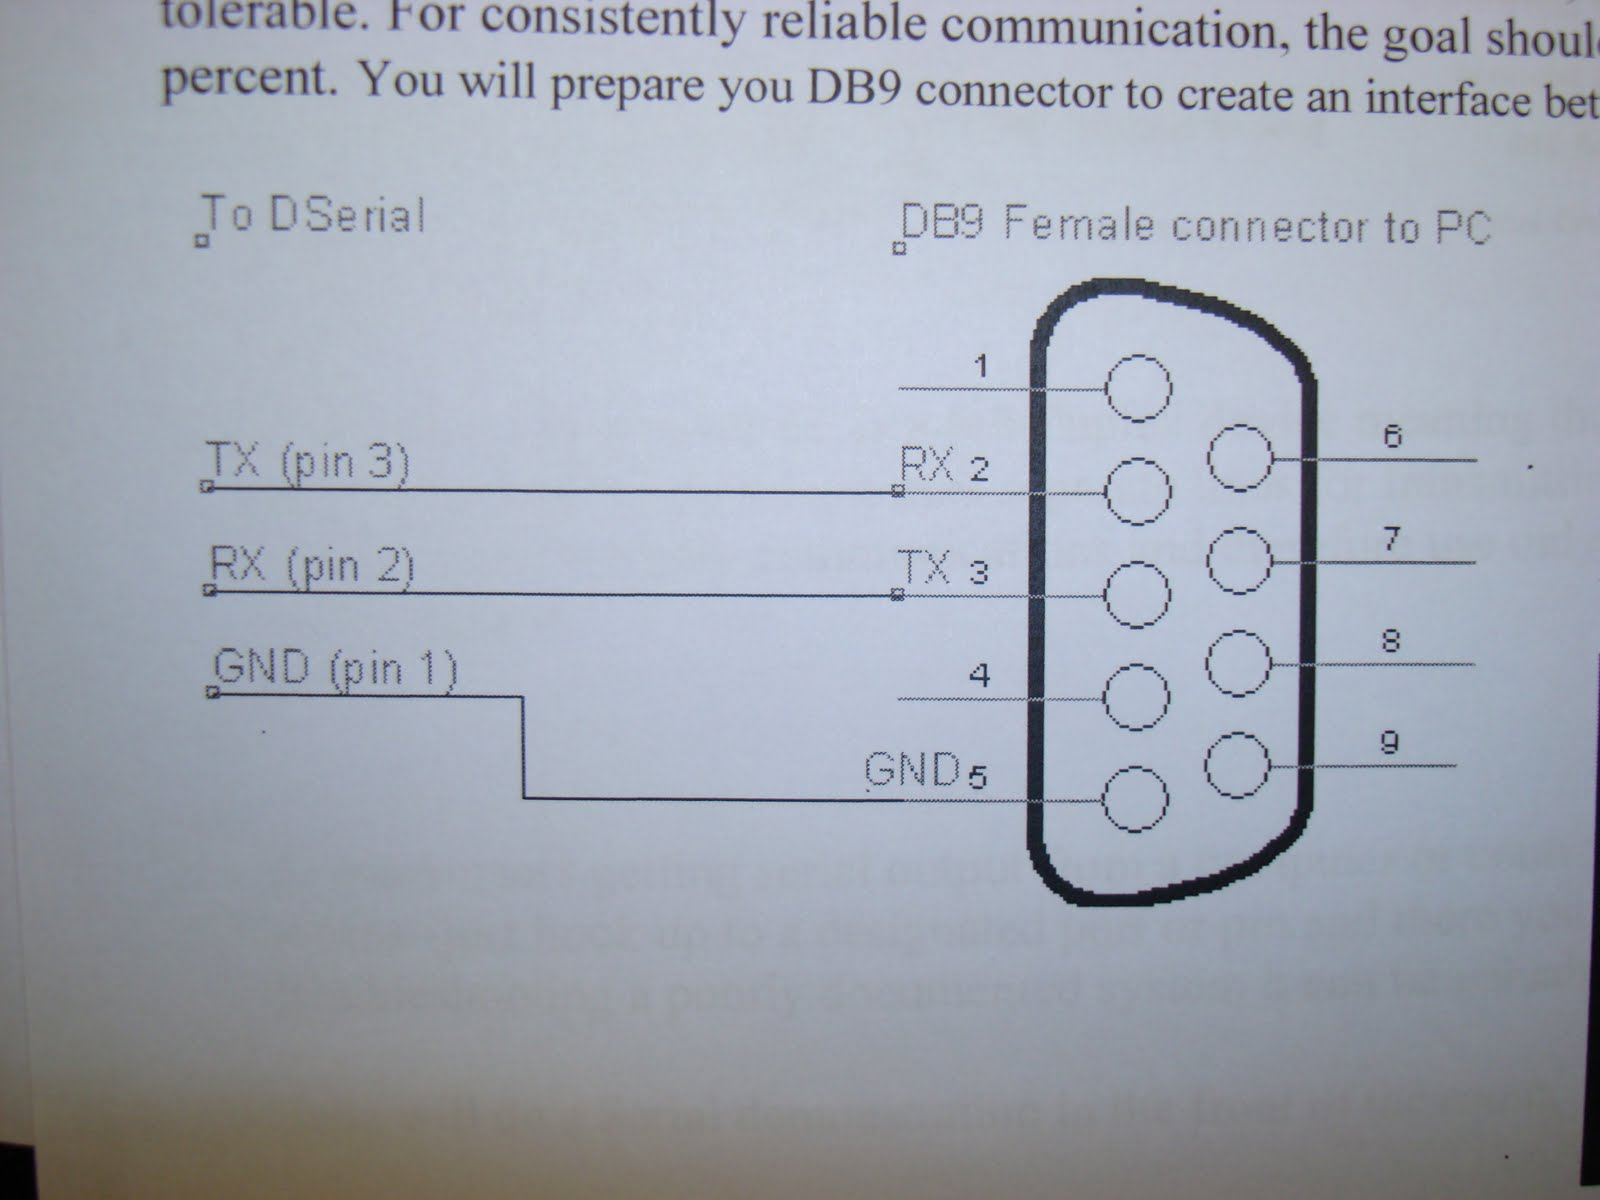 Female Usb Wiring Diagram | Wiring Diagram - Rj45 To Usb Wiring Diagram